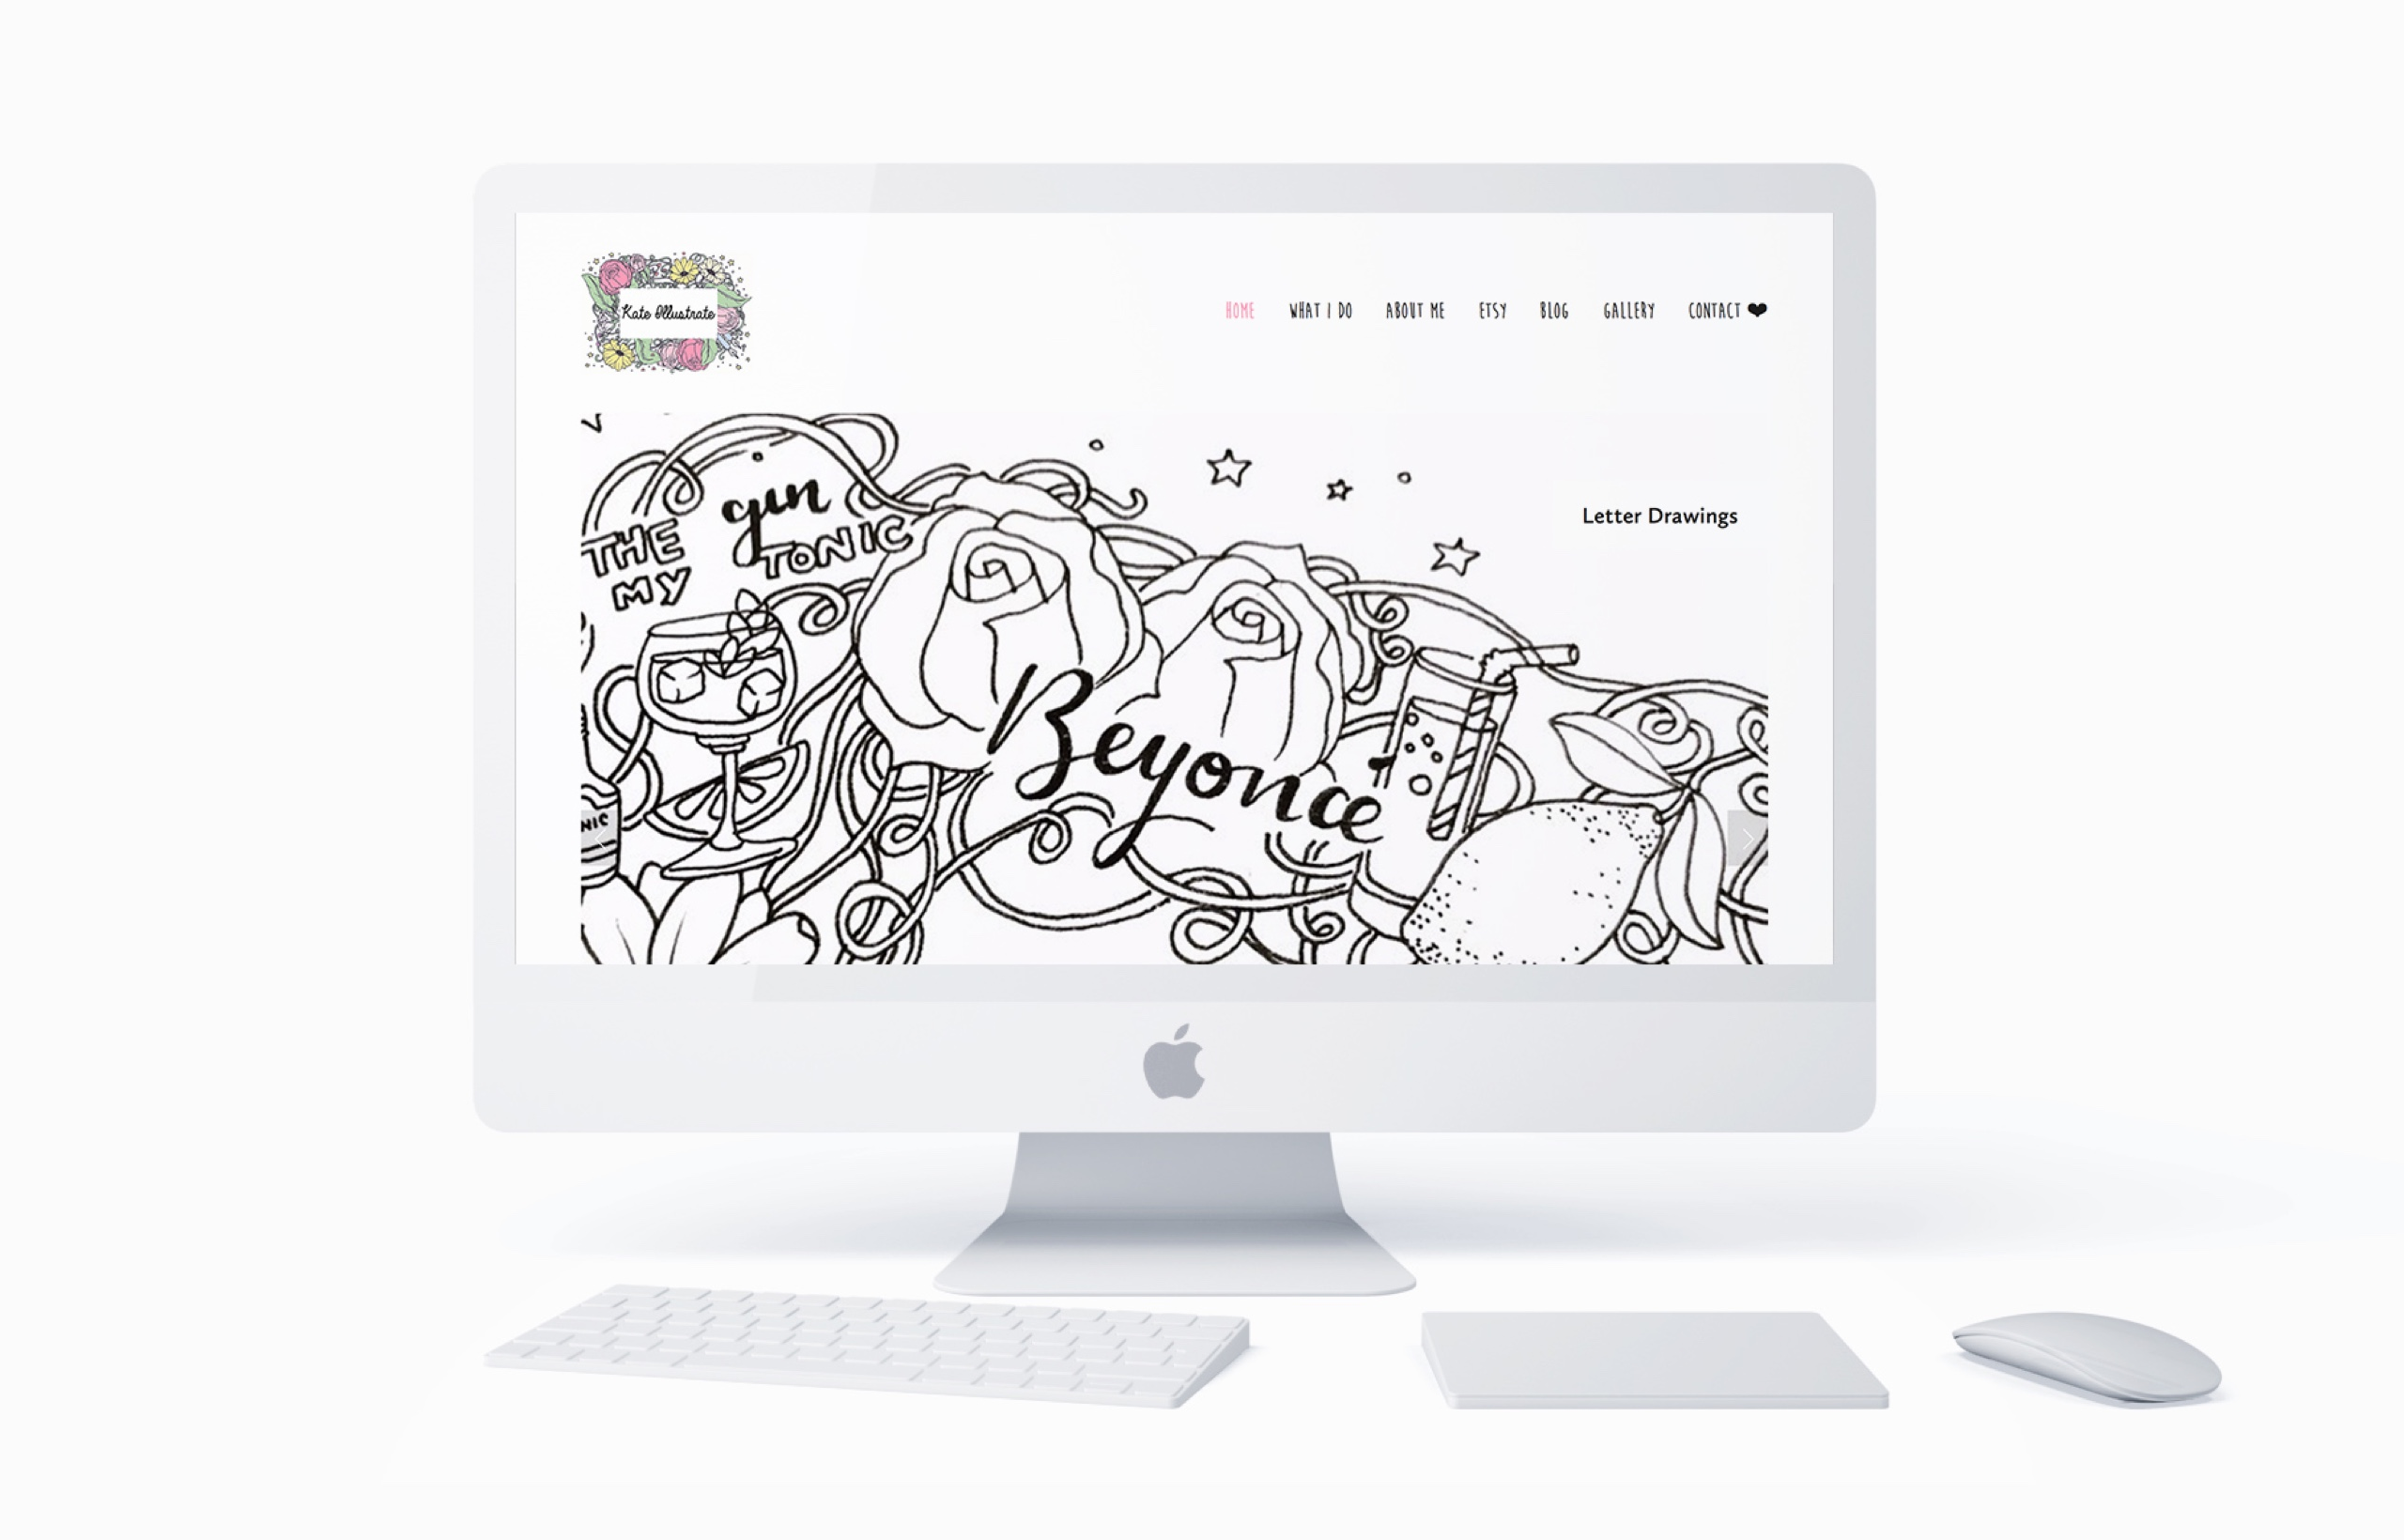 Website design for Kate Illustrate